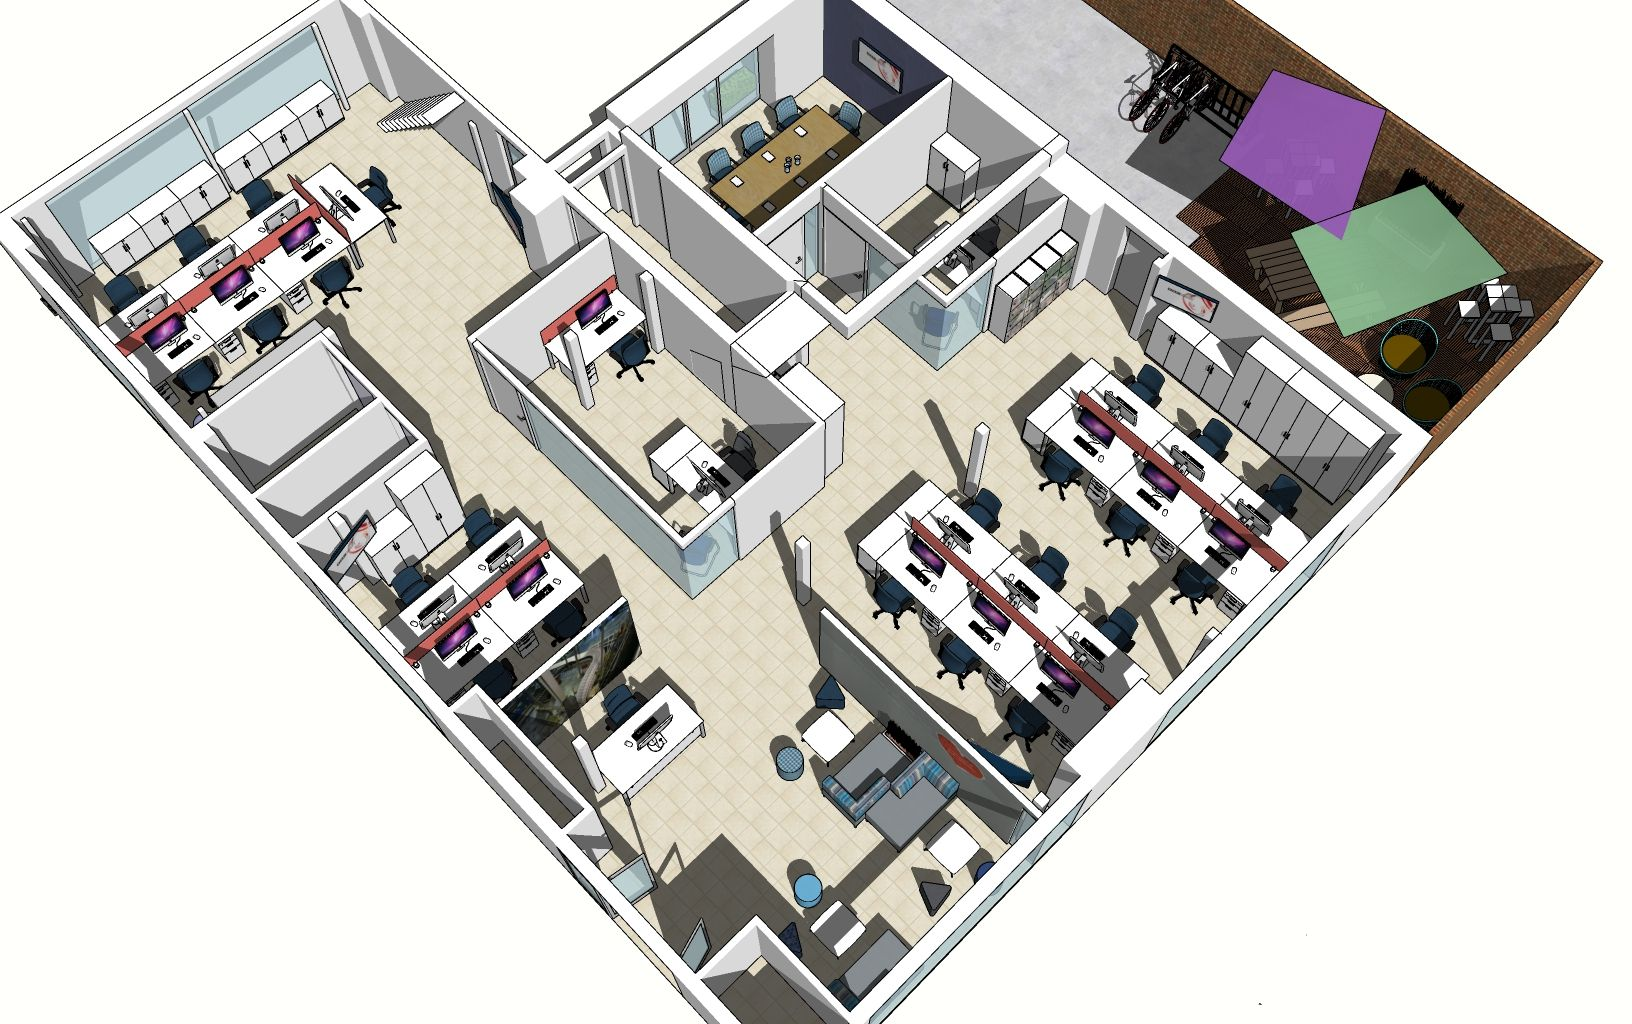 The benefits of downsizing, as shown by our office design for Newbury Weekly News